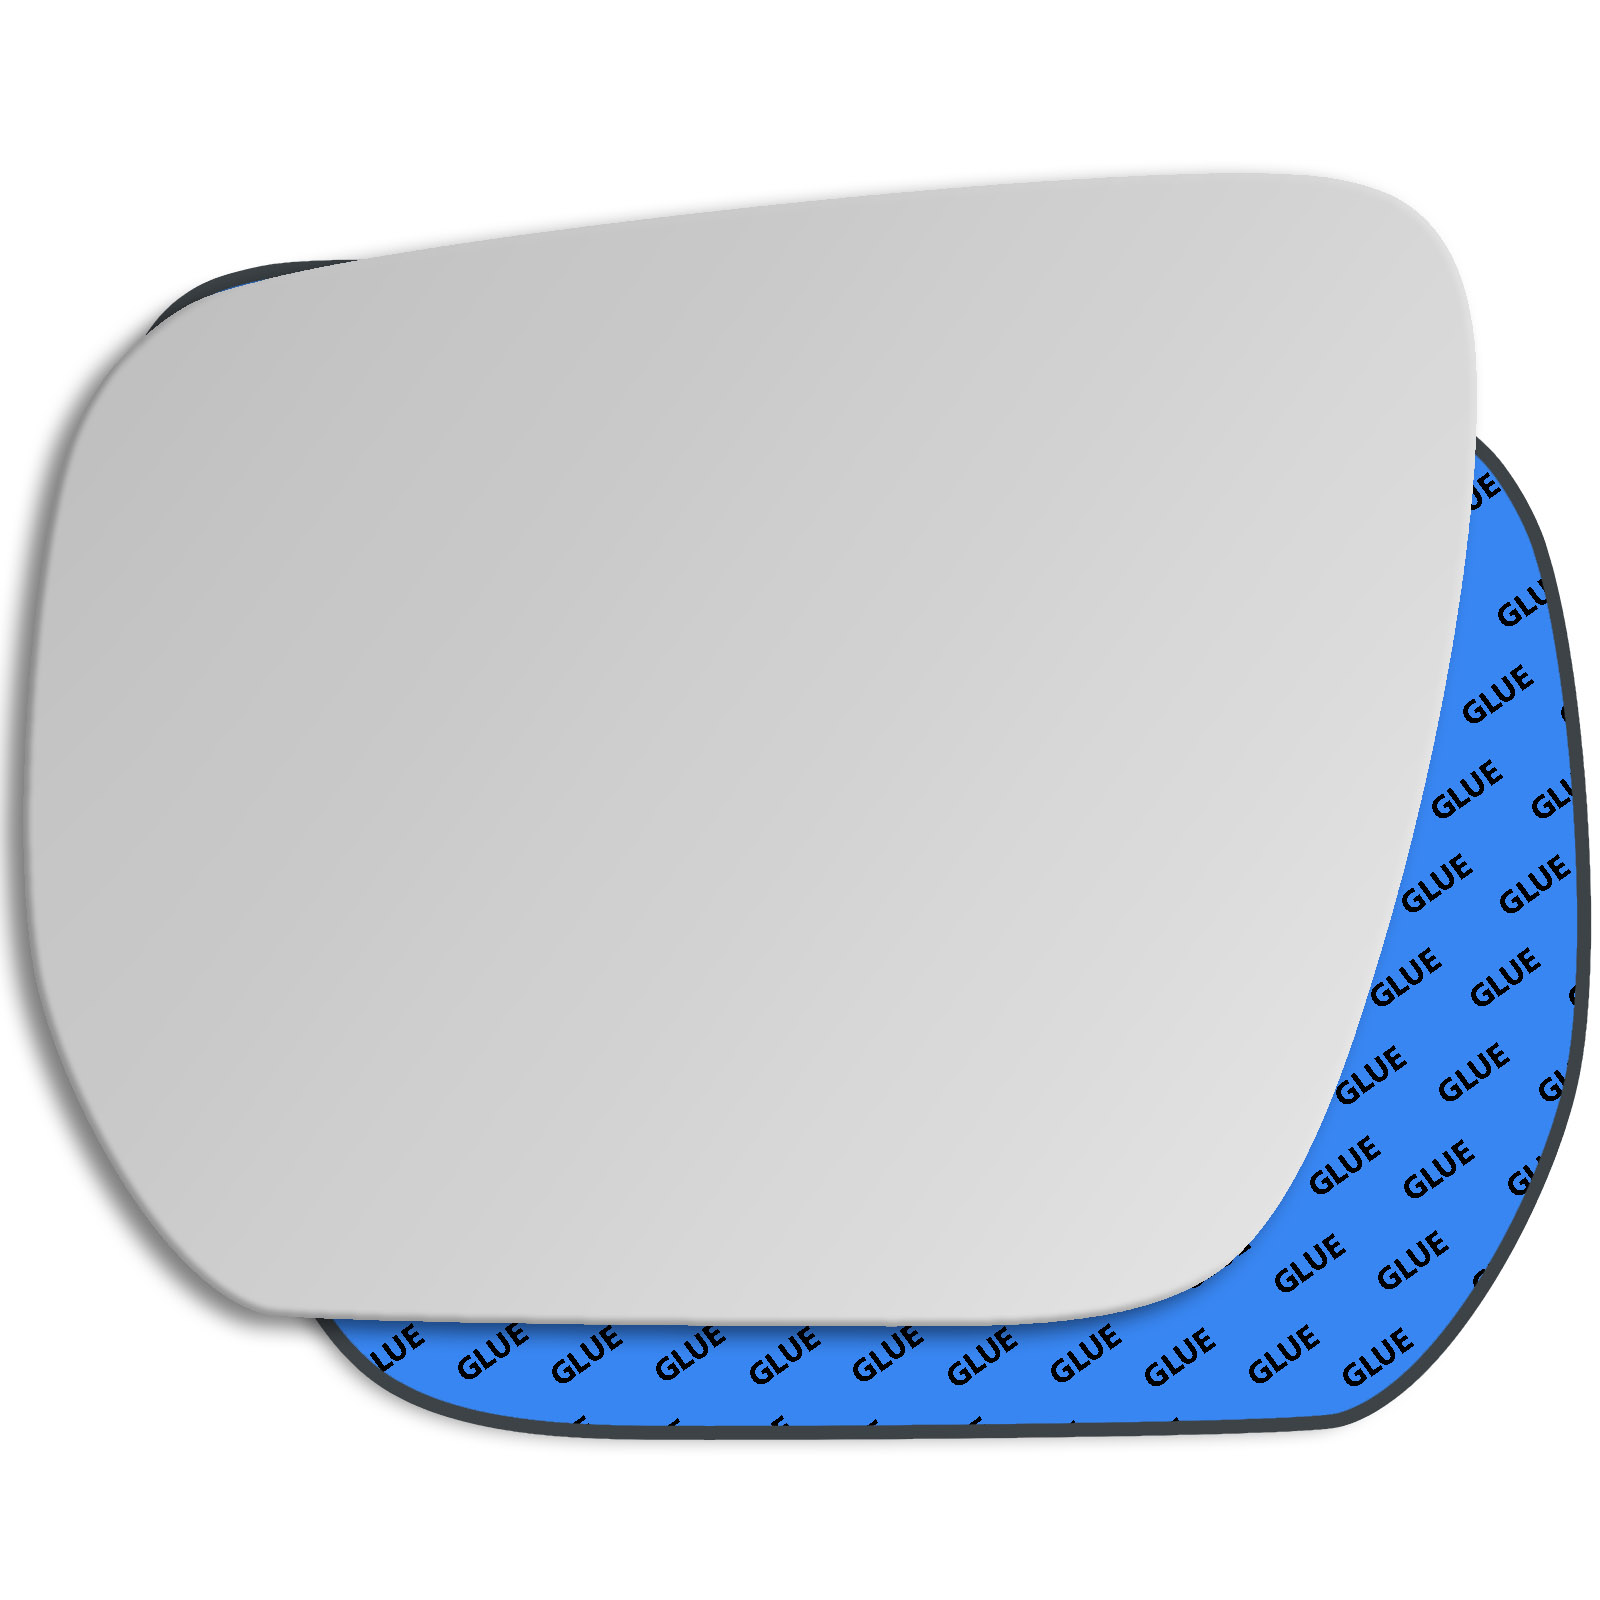 SUZUKI GRAND VITARA 1999-2005 left Passenger Side Convex Mirror Glass 206ls